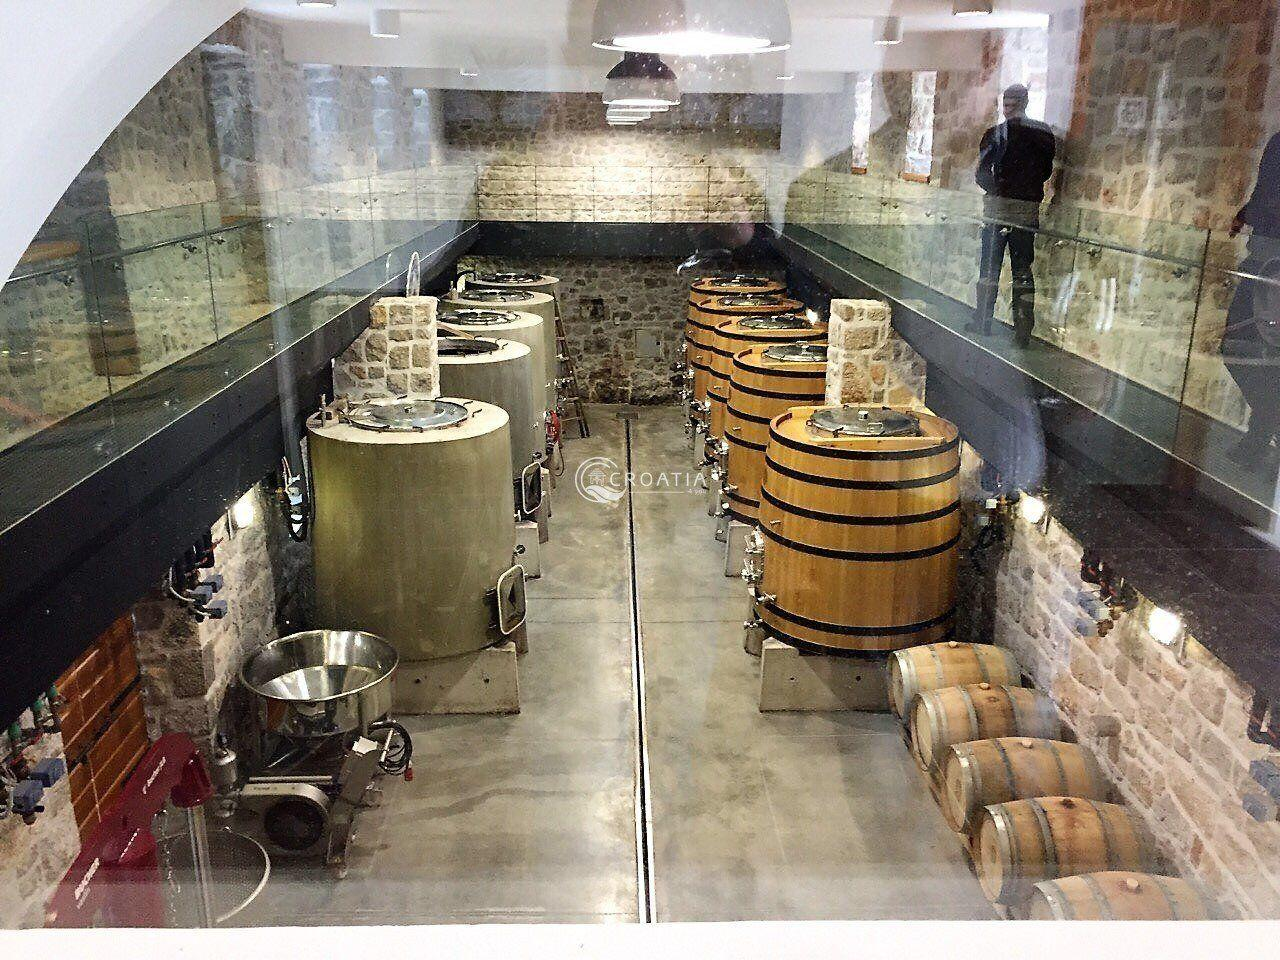 SAINTS HILS WINE TOUR